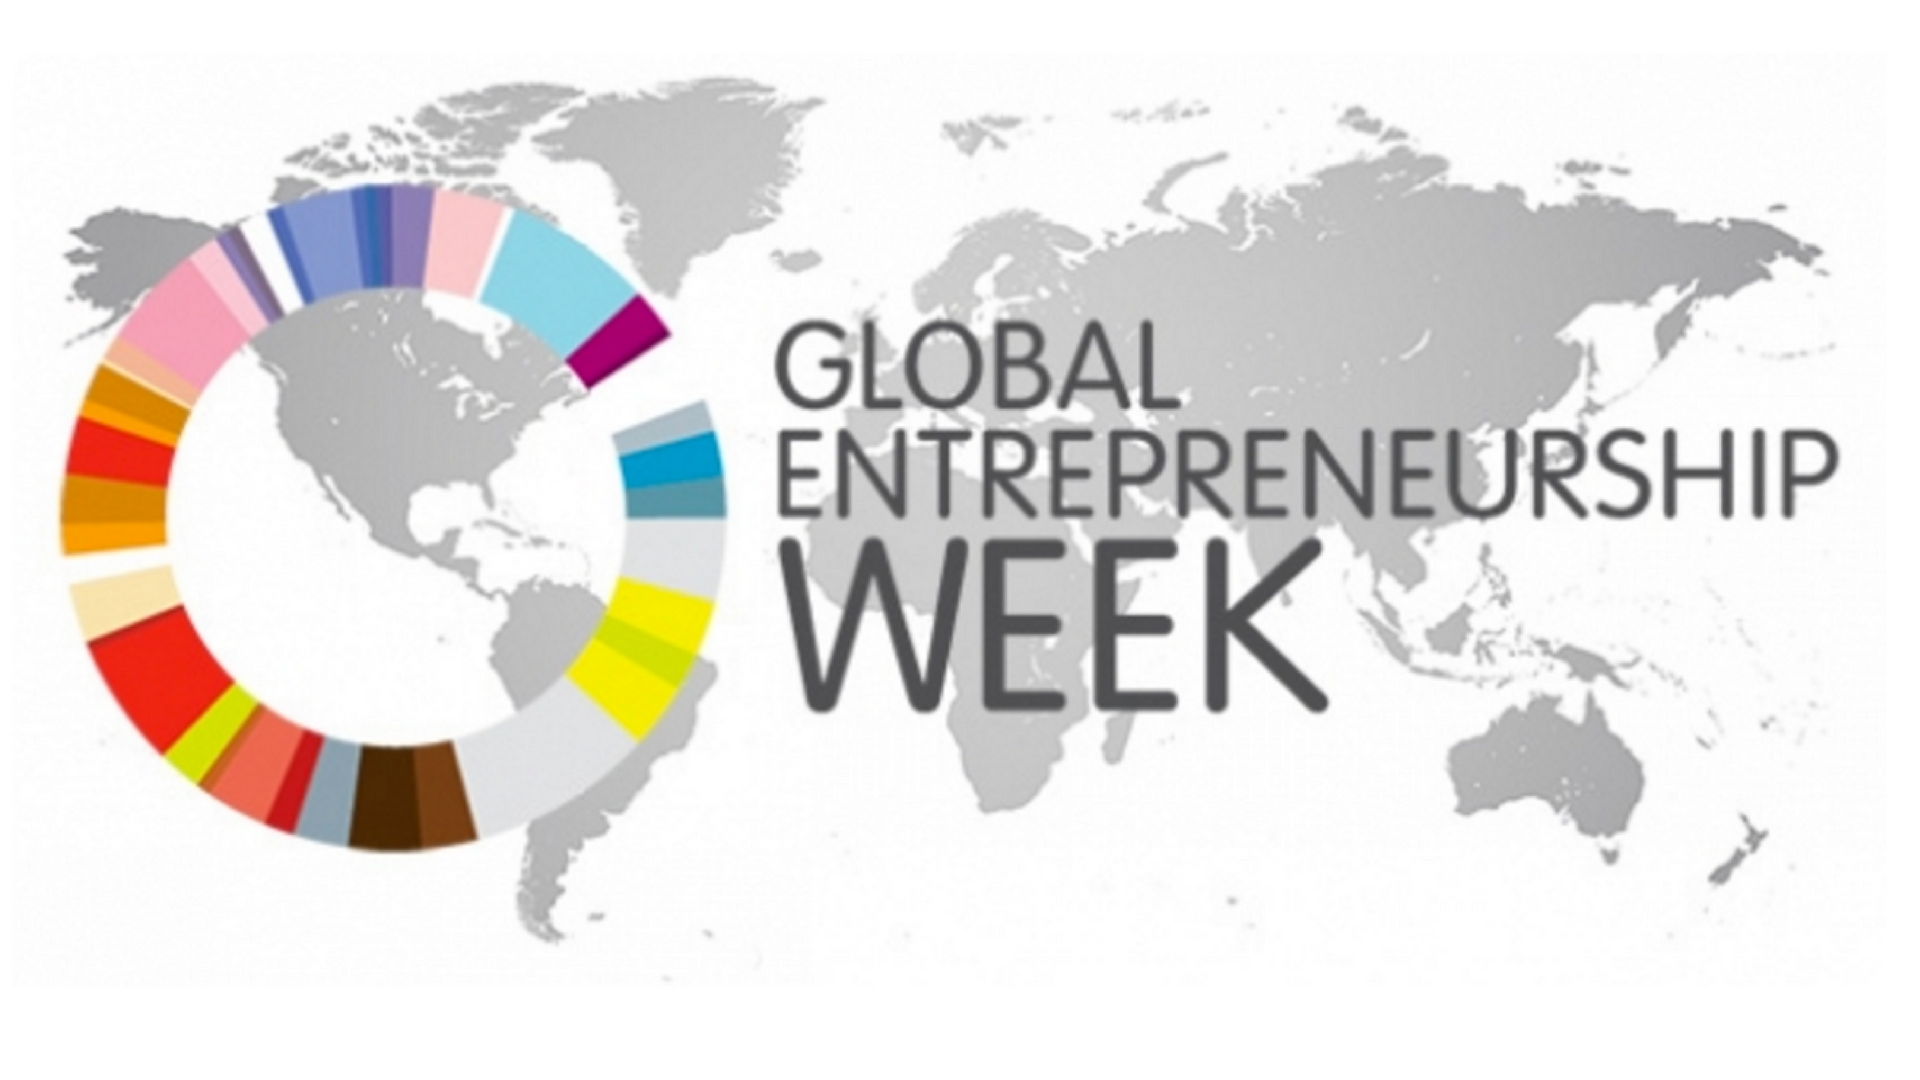 Global Entrpreneurship Week